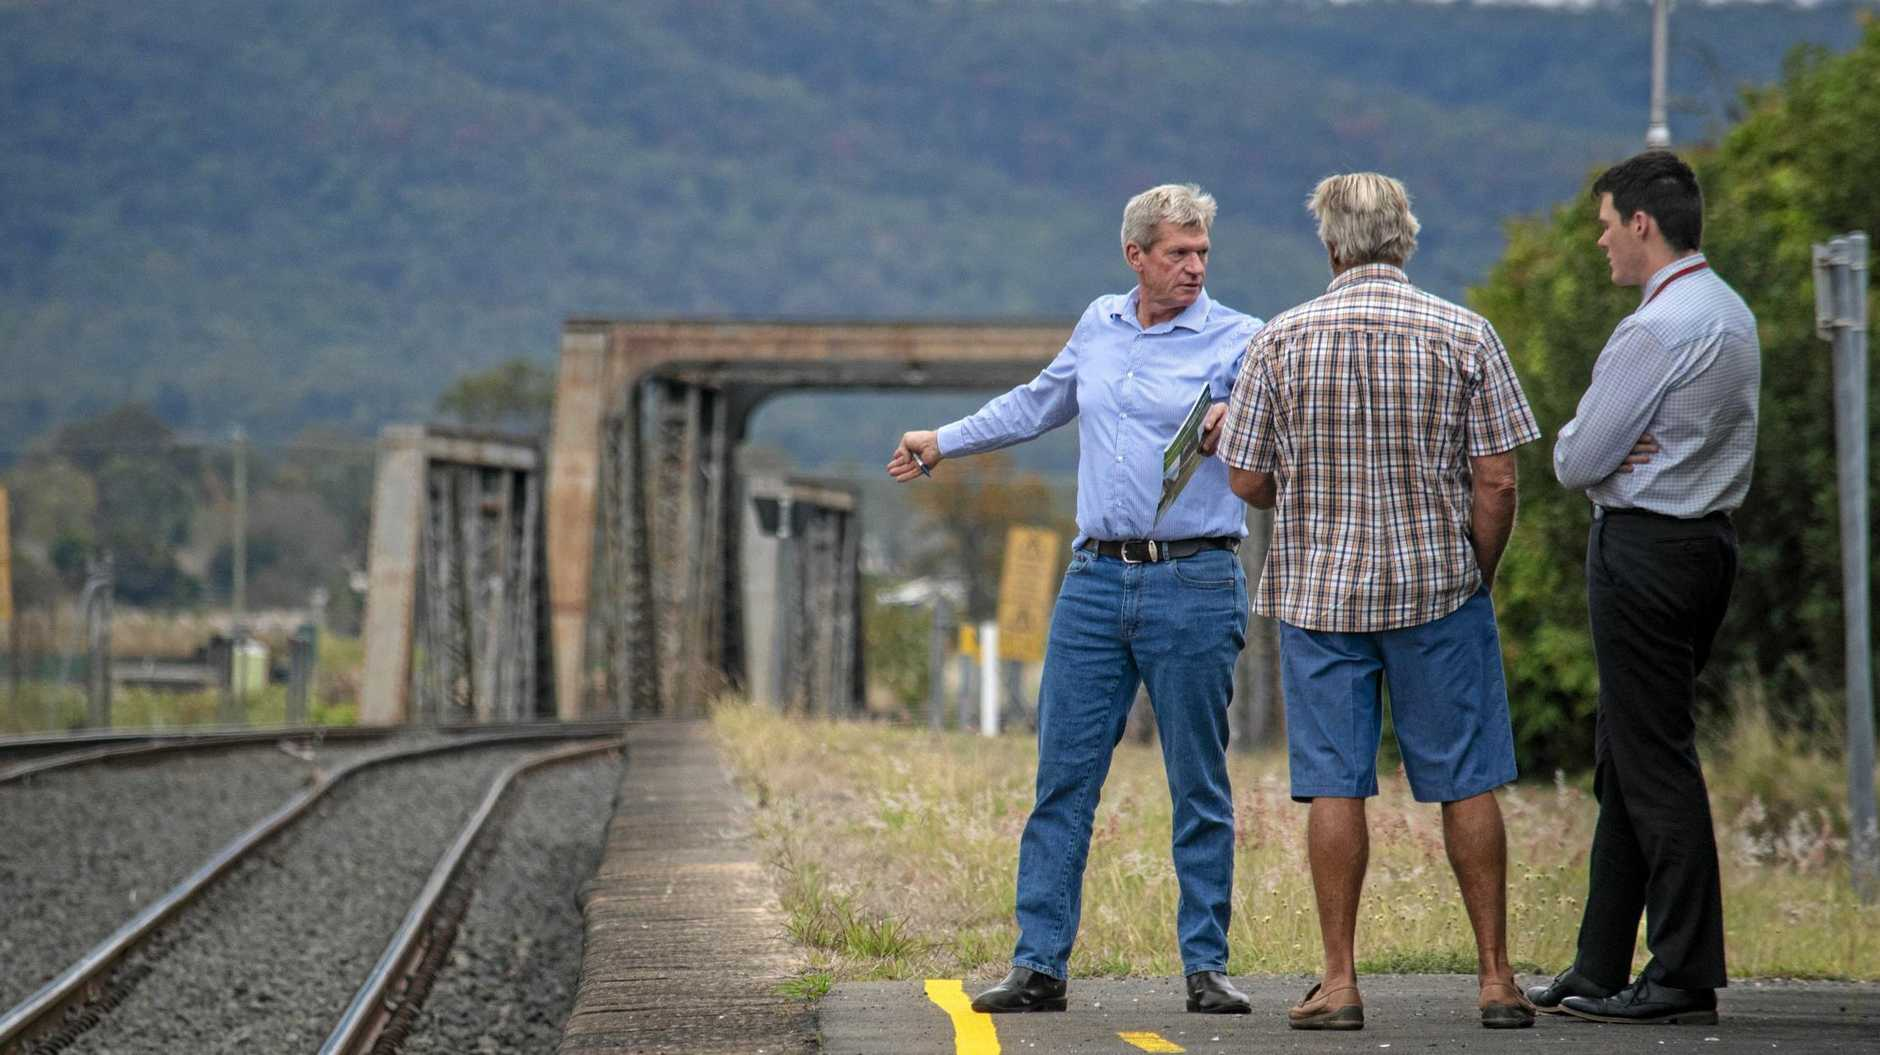 CONCERNED: Member for Lockyer Jim McDonald chats about the Inland Rail at the Gatton Train Station.